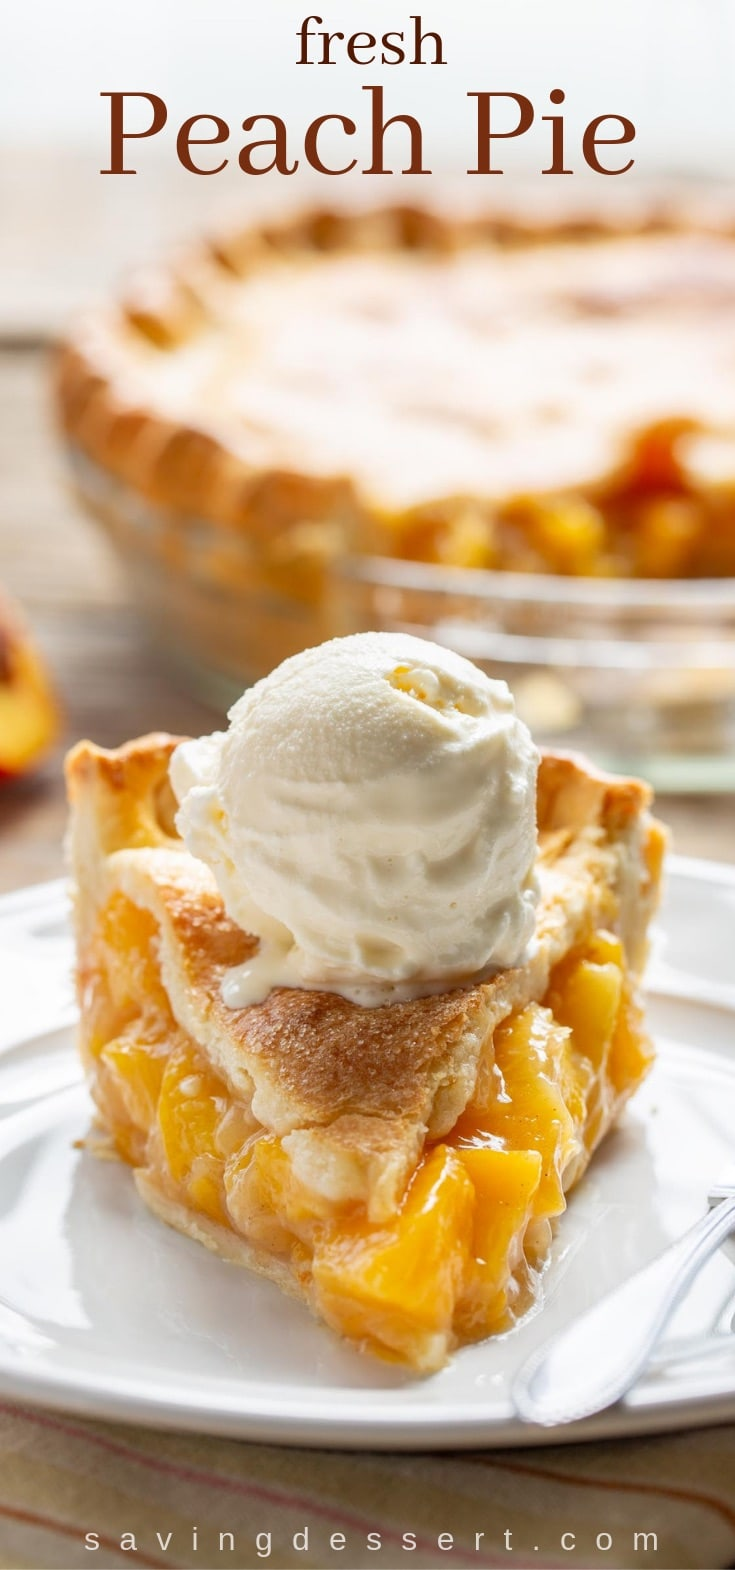 A thick slice of fresh peach pie topped with a scoop of vanilla ice cream